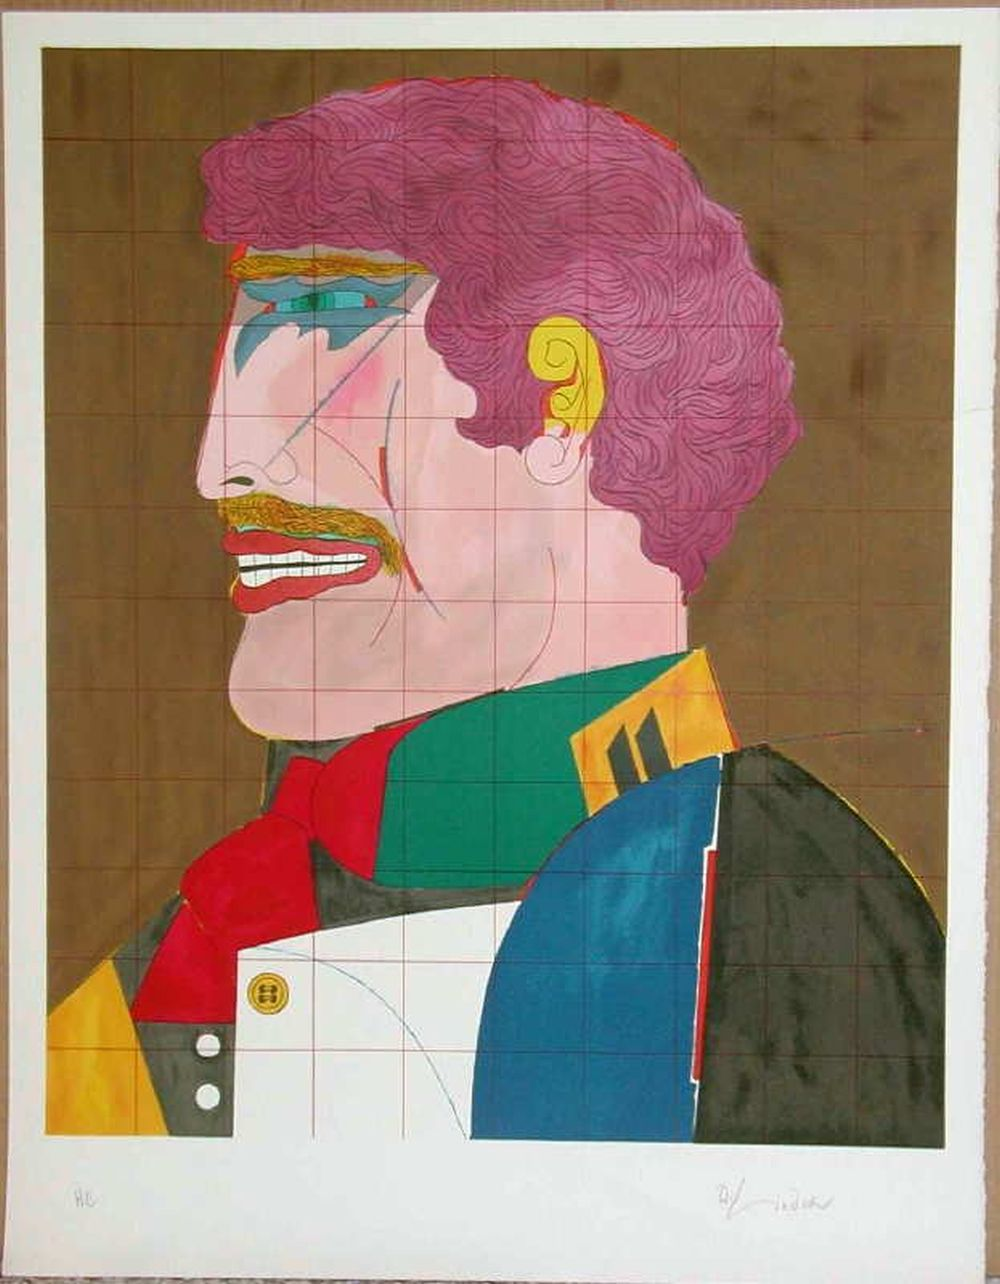 Lot 313: Richard Lindner, Profile, Signed Lithograph